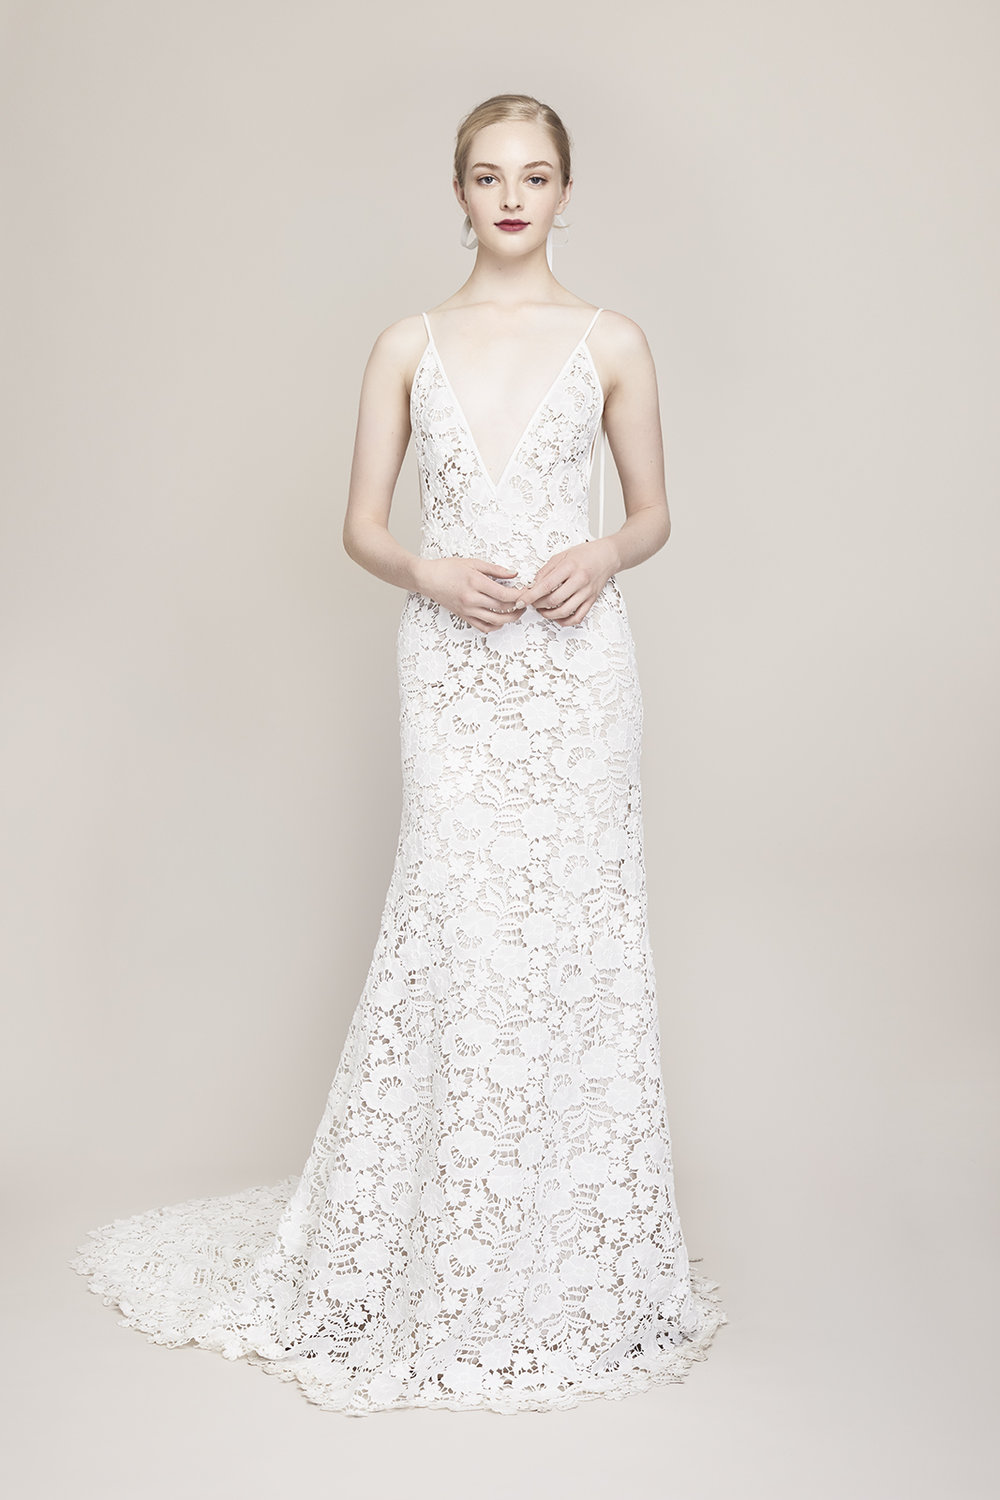 78dbcc9fd70 Lela Rose Fall 2019 Collection Preview — Little White Dress Bridal ...